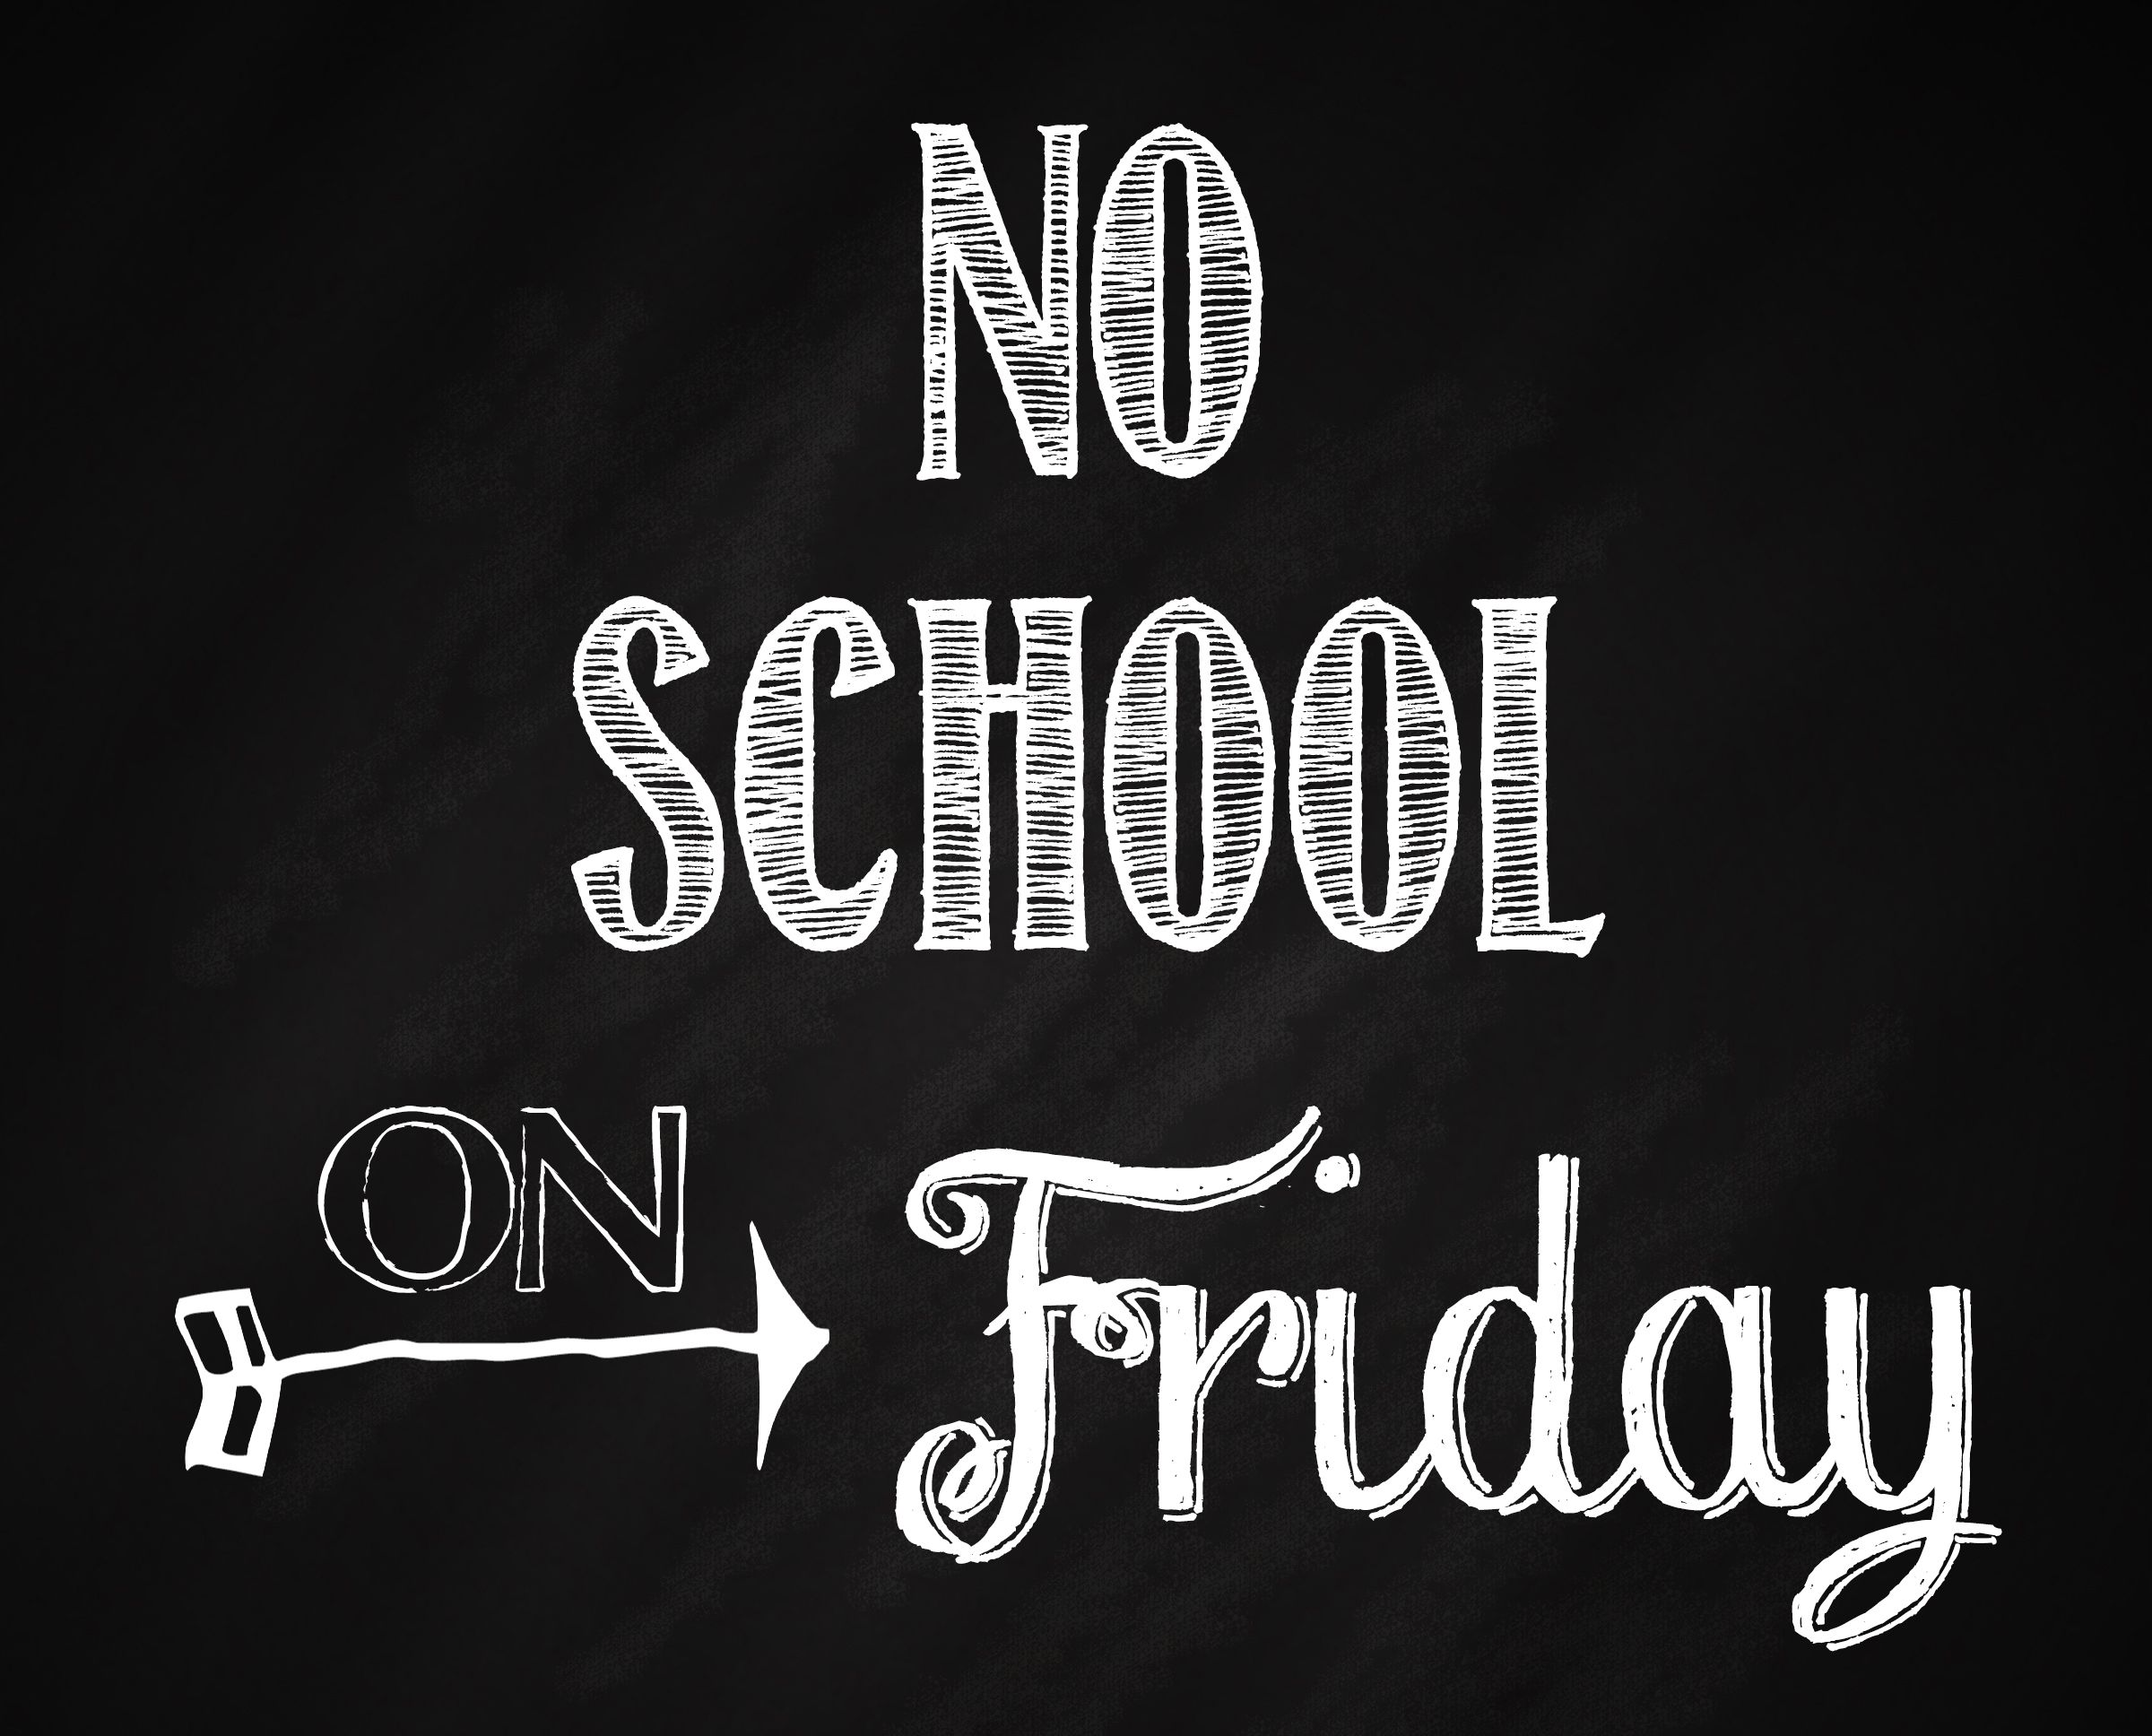 no school this friday school clip art pinterest school and rh pinterest nz no school clipart black and white no school monday clipart